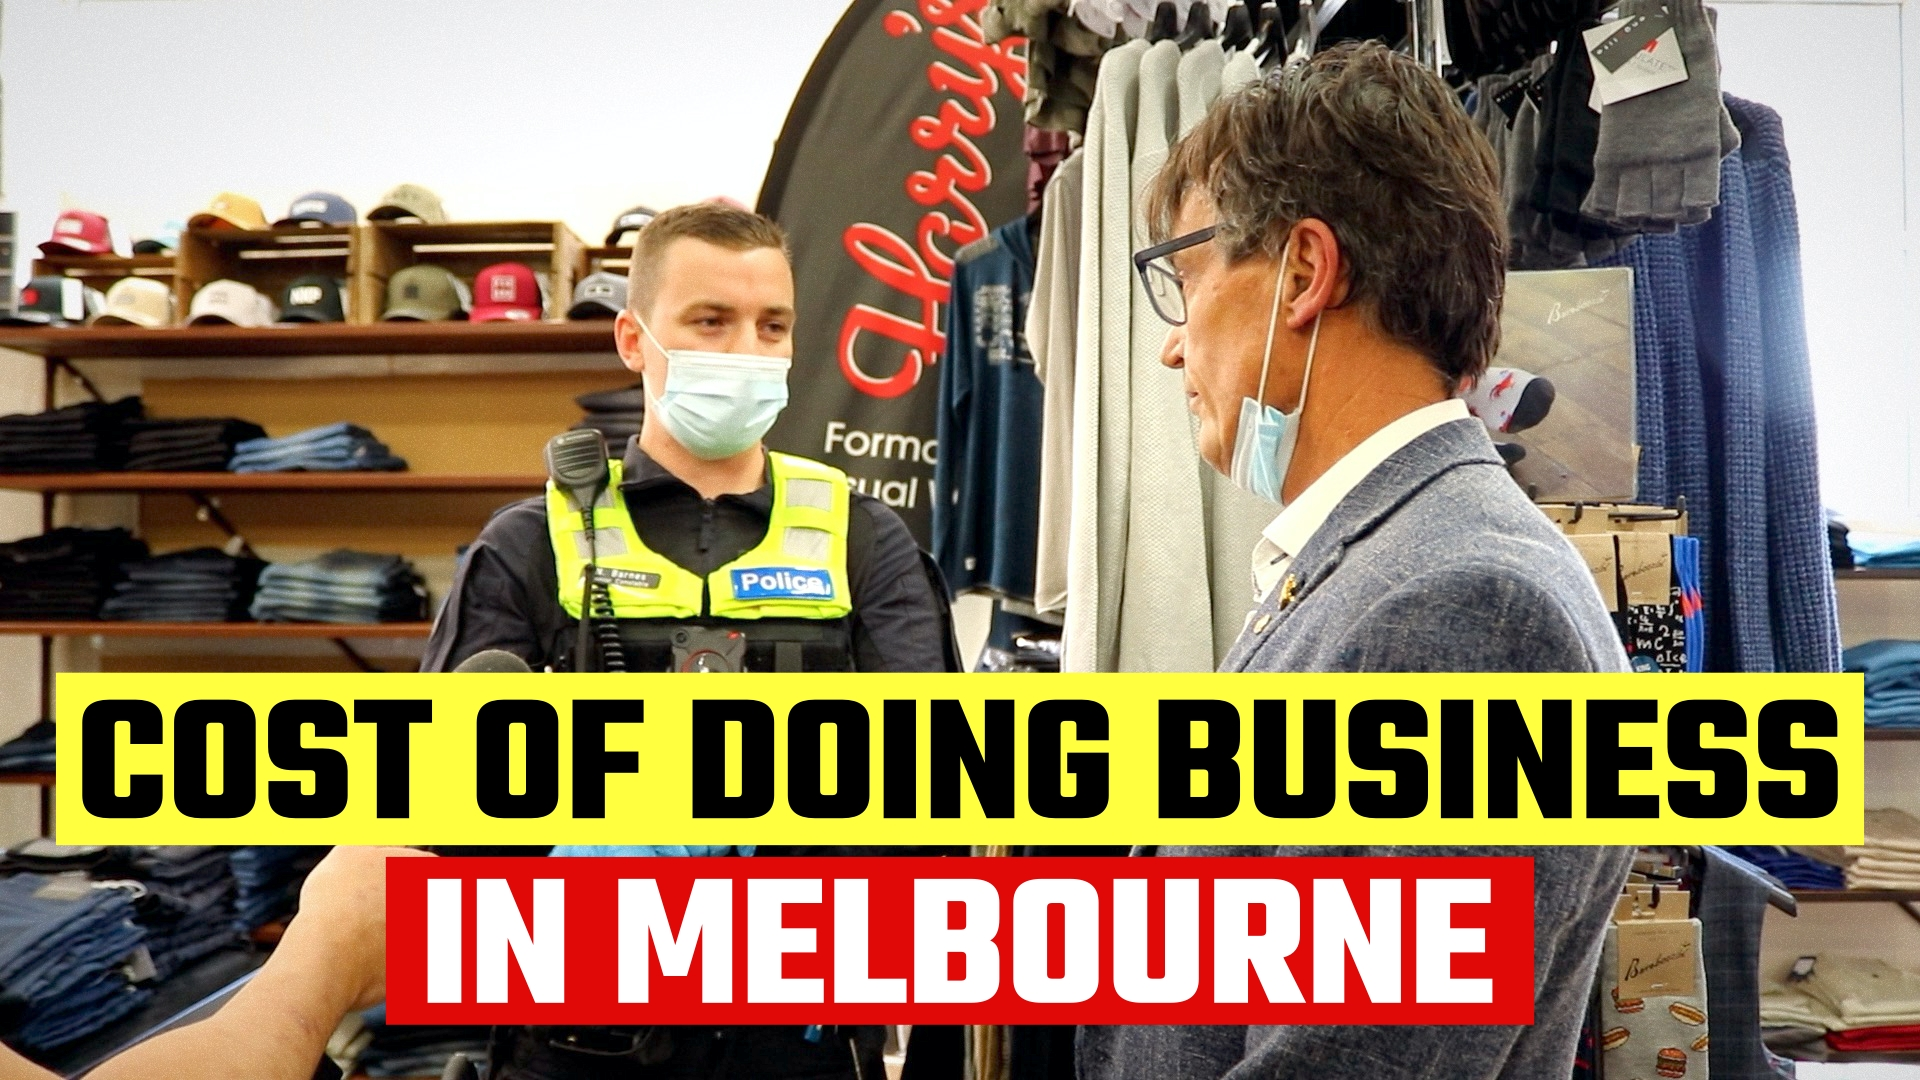 BREAKING: Police threaten shop in Melbourne with MASSIVE fine for defying lockdown